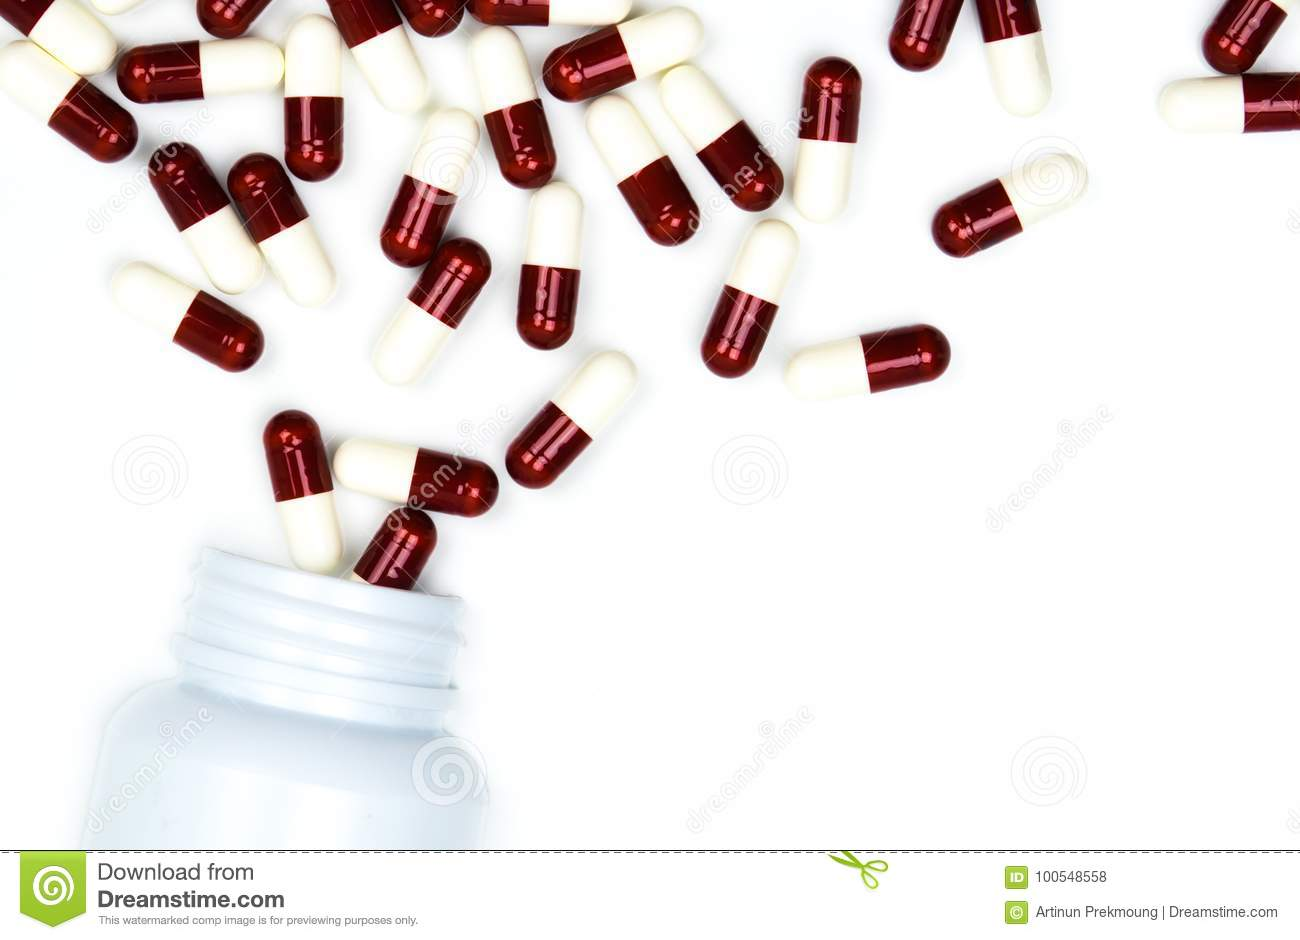 Pouring antibiotics capsule pills into plastic bottle isolated on white background with copy space.